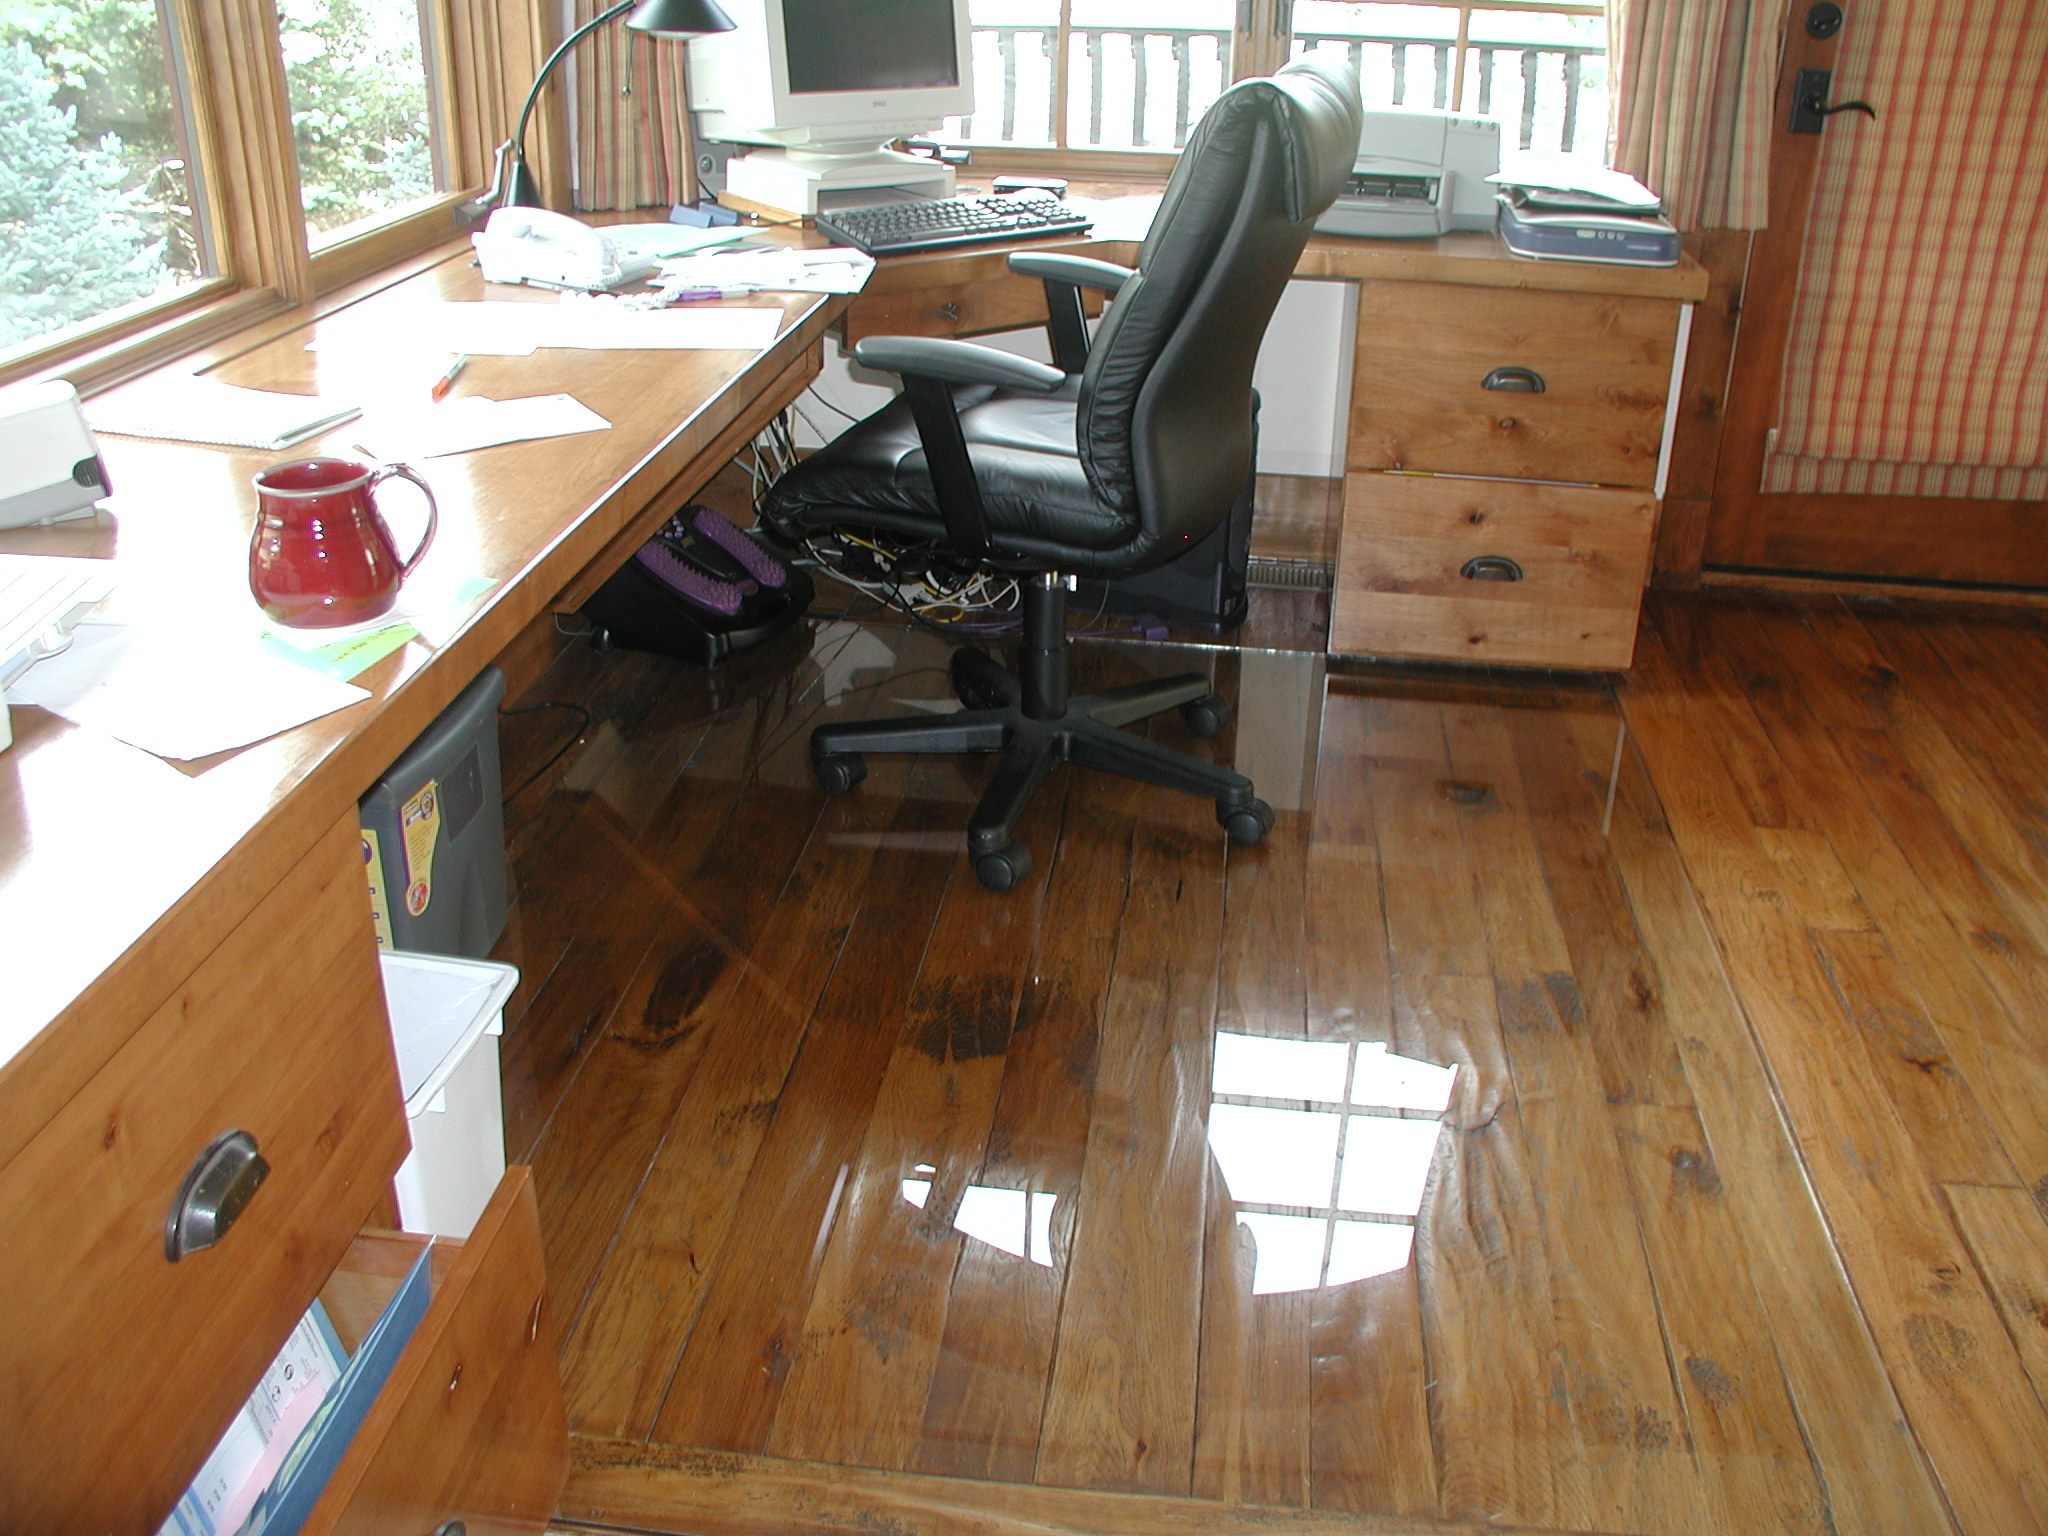 Cool Transparent Floor Mats for Wooden floors carpet chair mats for hardwood floors